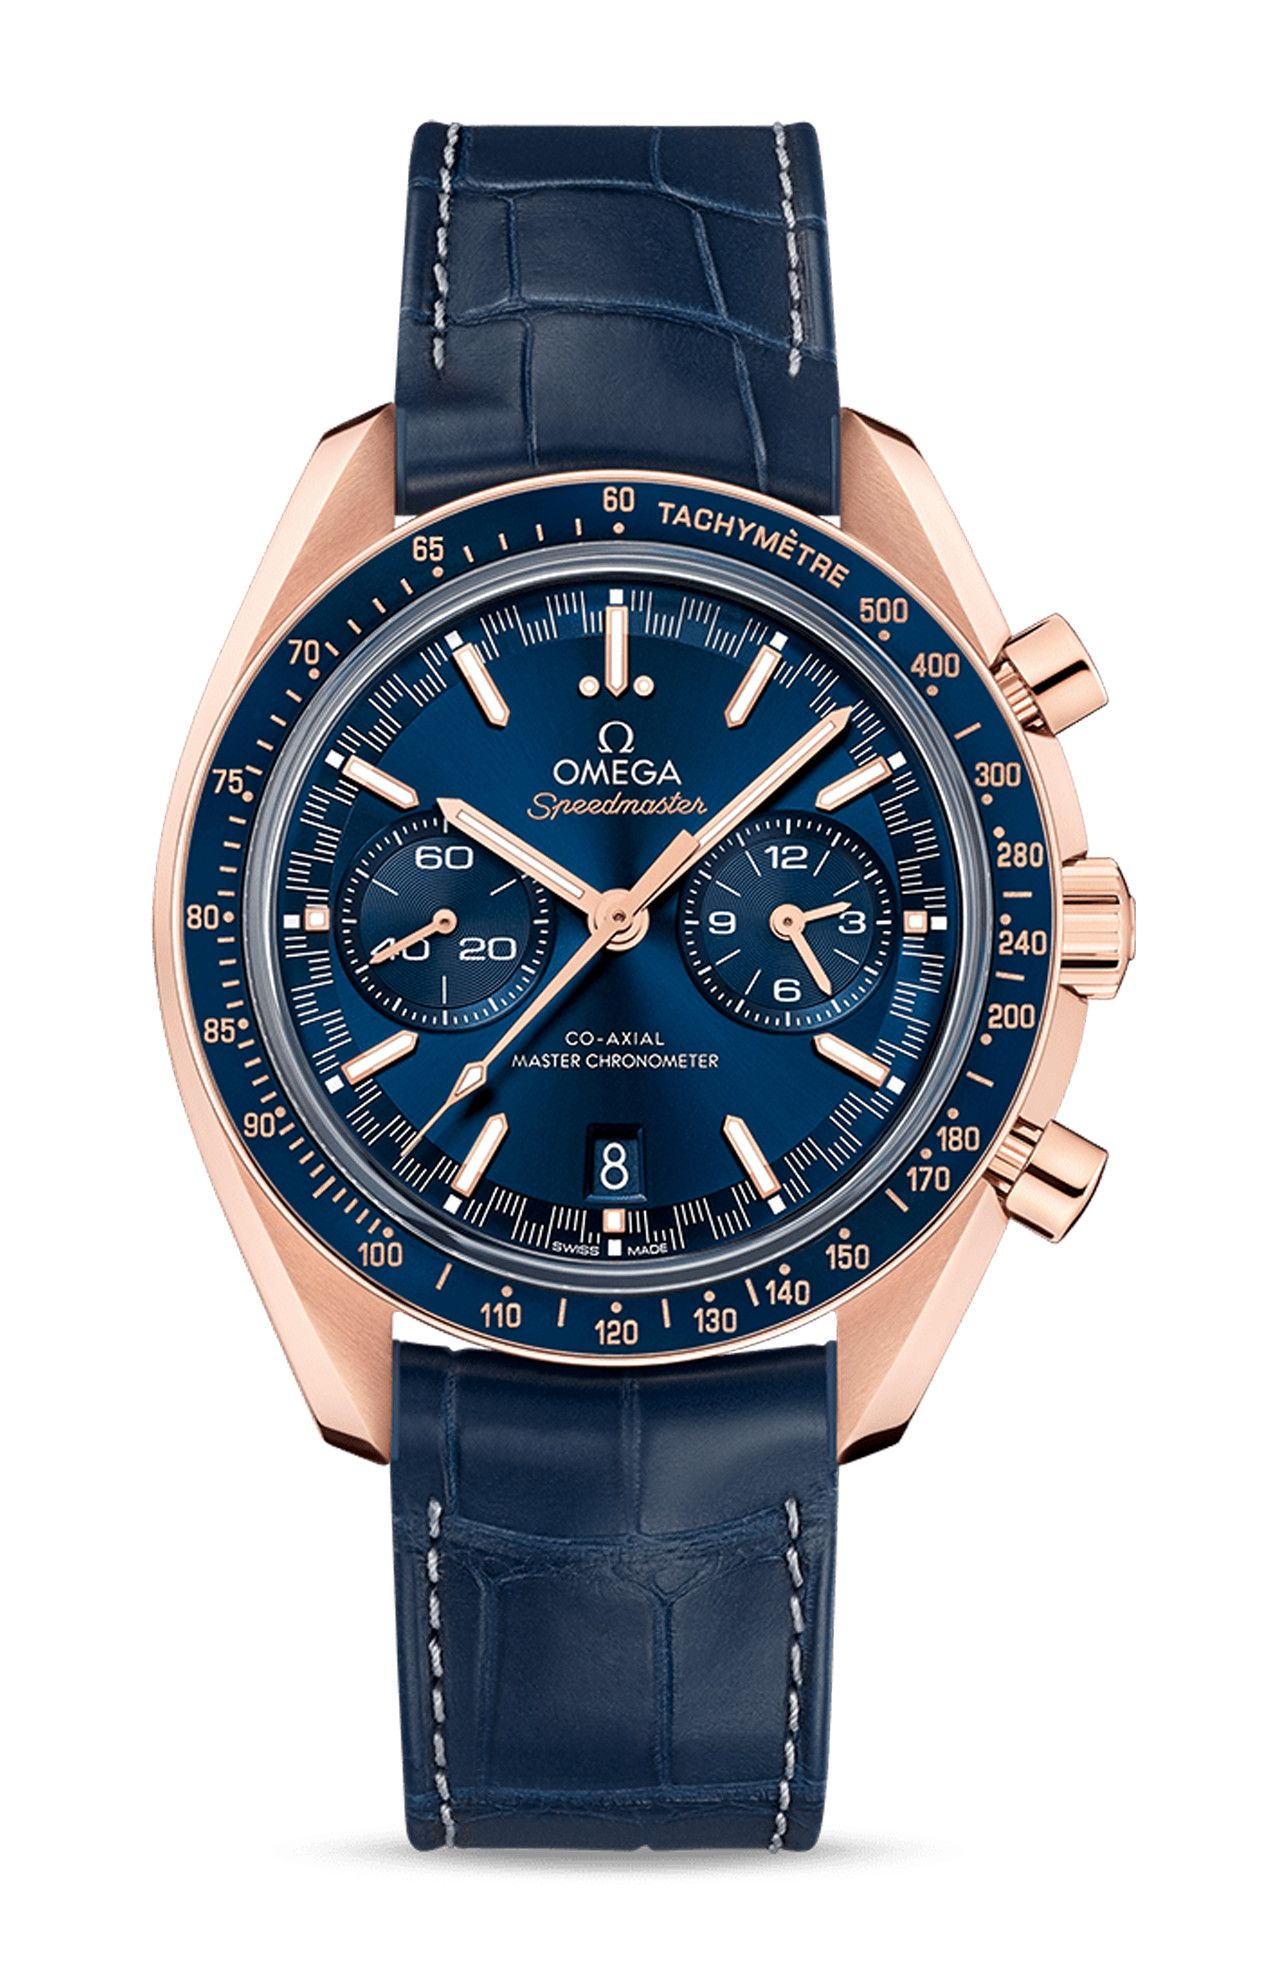 SPEEDMASTER RACING OMEGA CO-AXIAL MASTER CHRONOMETER CHRONOGRAPH44,25 MM - 329.53.44.51.03.001